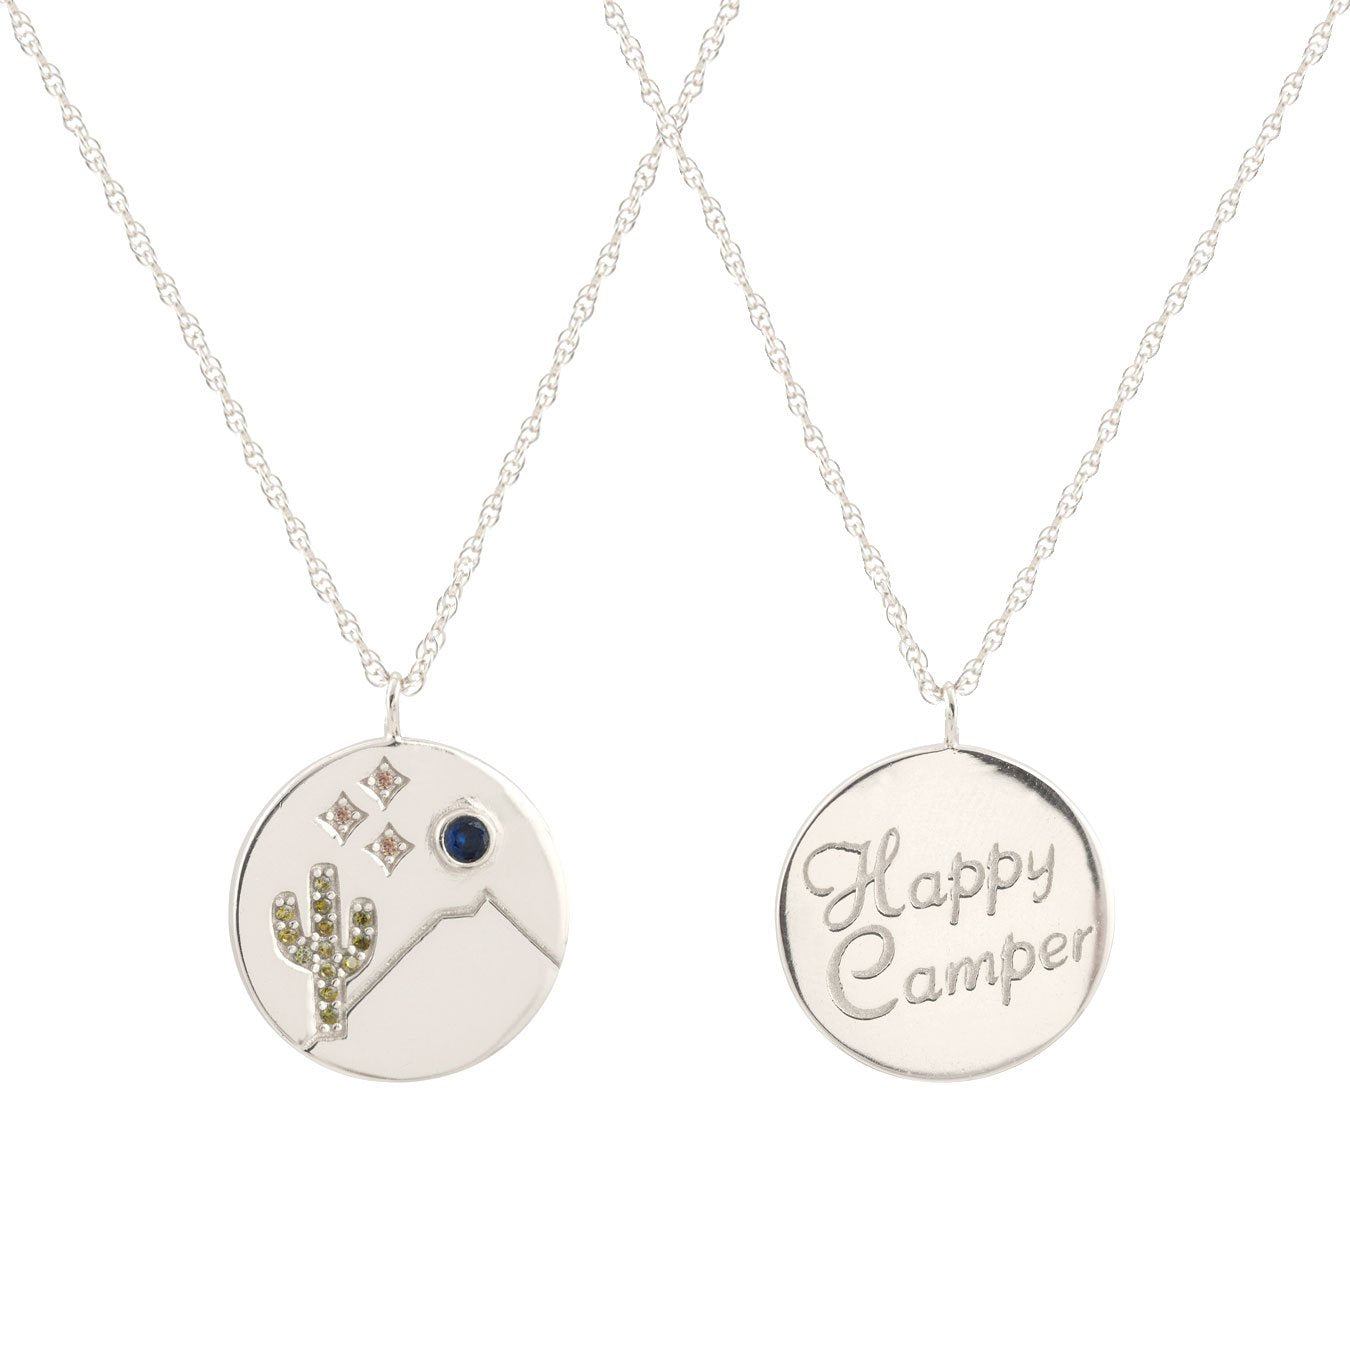 KRIS NATIONS - HAPPY CAMPER NECKLACE IN SILVER